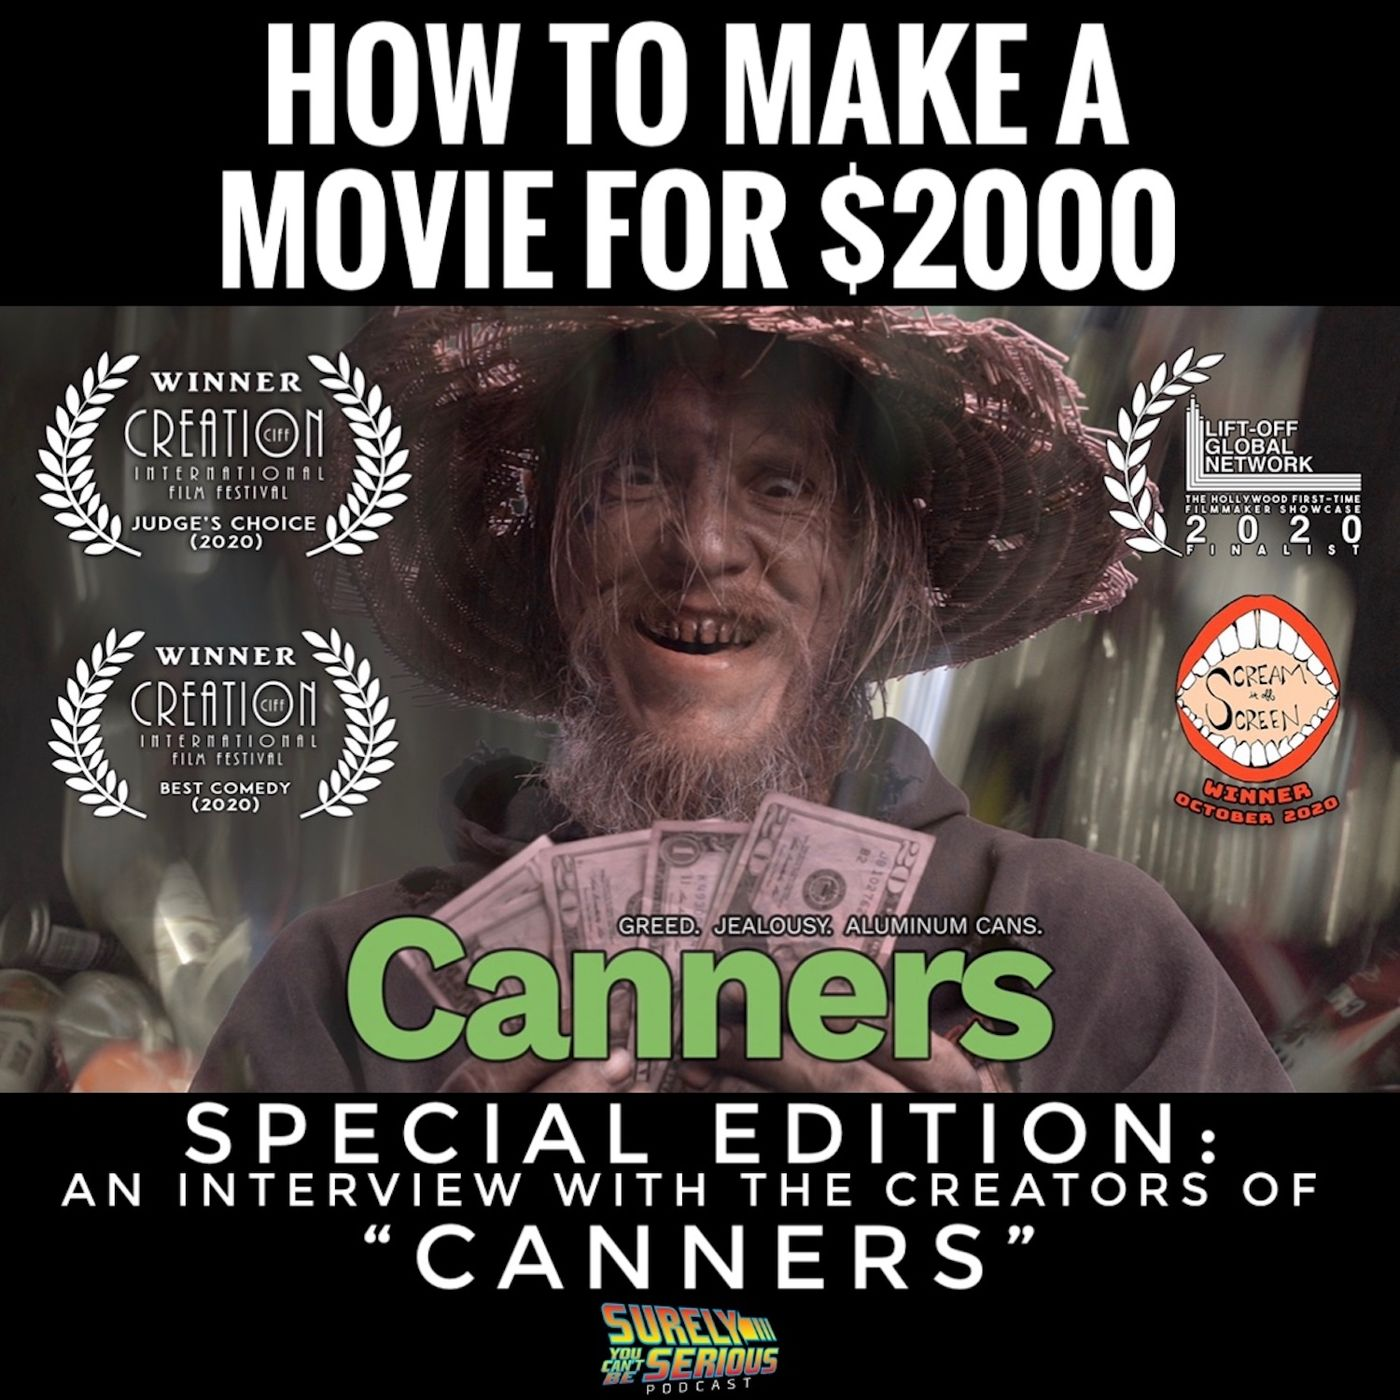 """Special Edition: An Interview with the Creators of """"Canners"""" -or- How to Make an Award-Winning Film for only $2000"""